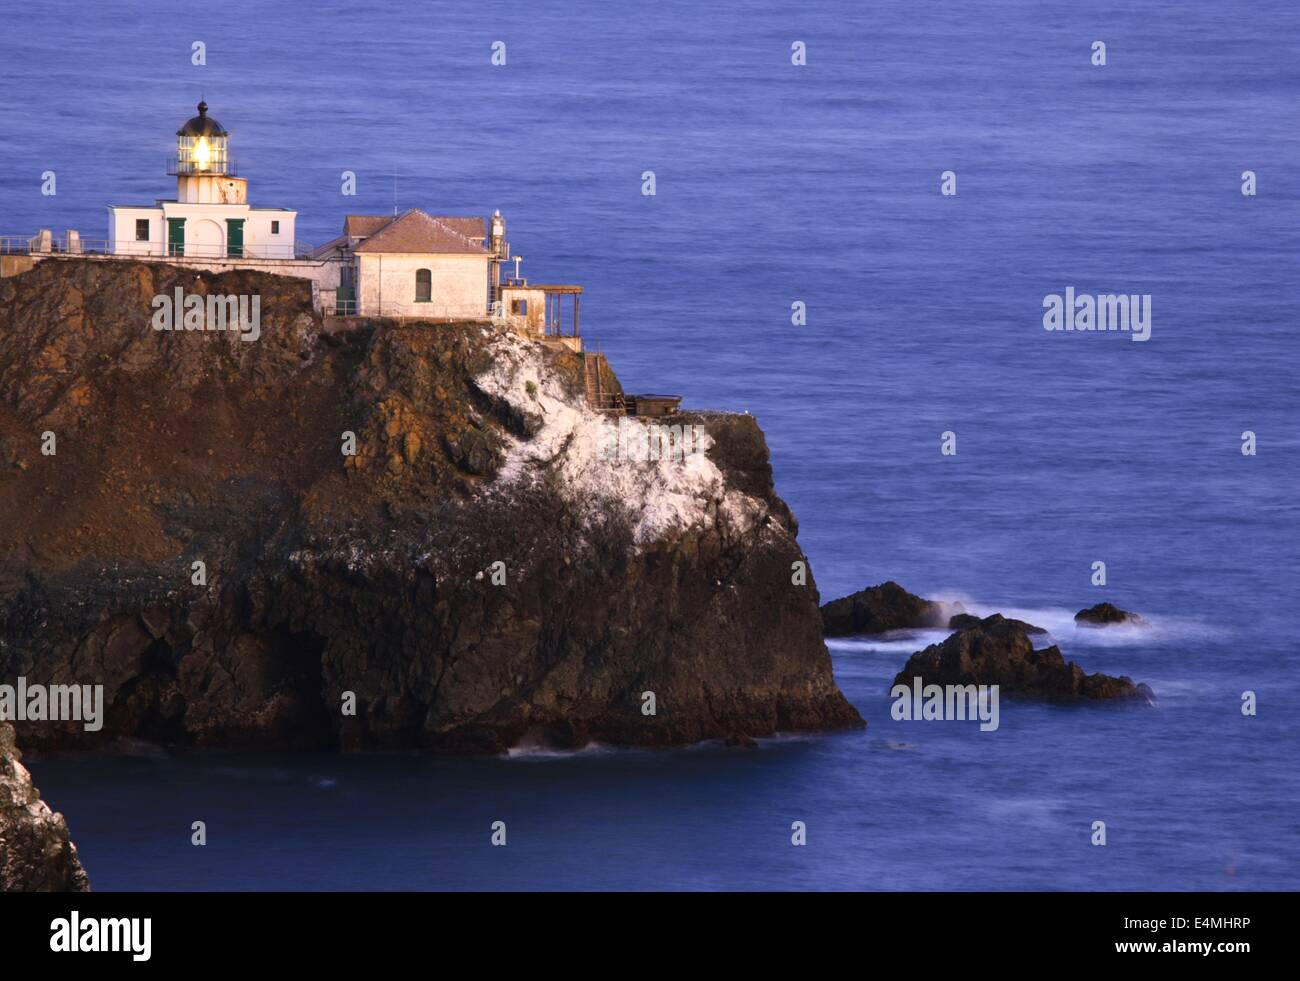 Faro de Punta Bonita en el Golden Gate National Recreation Area, cerca de San Francisco, California Imagen De Stock